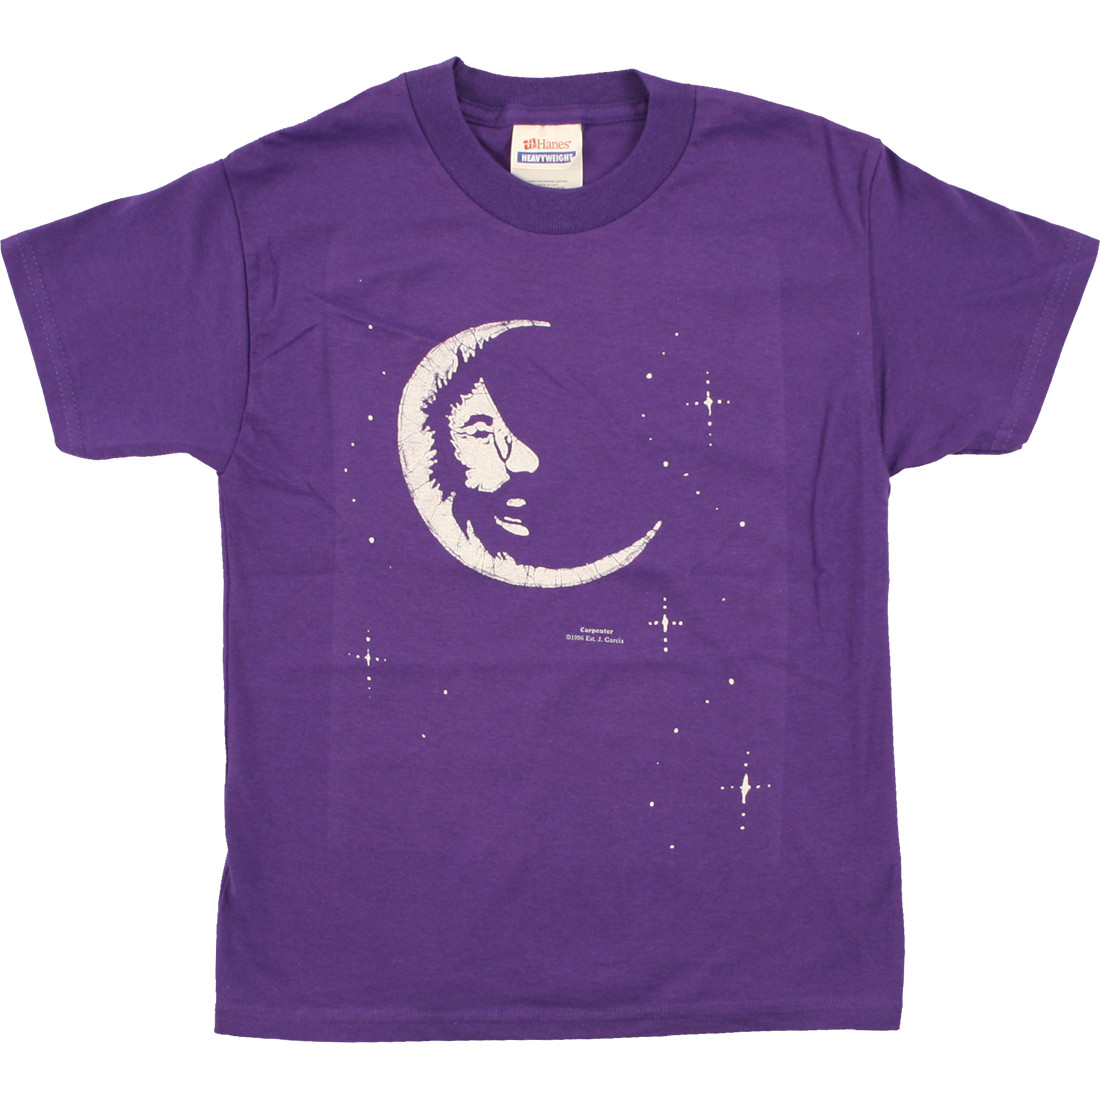 Jerry Moon Youth Purple T-Shirt